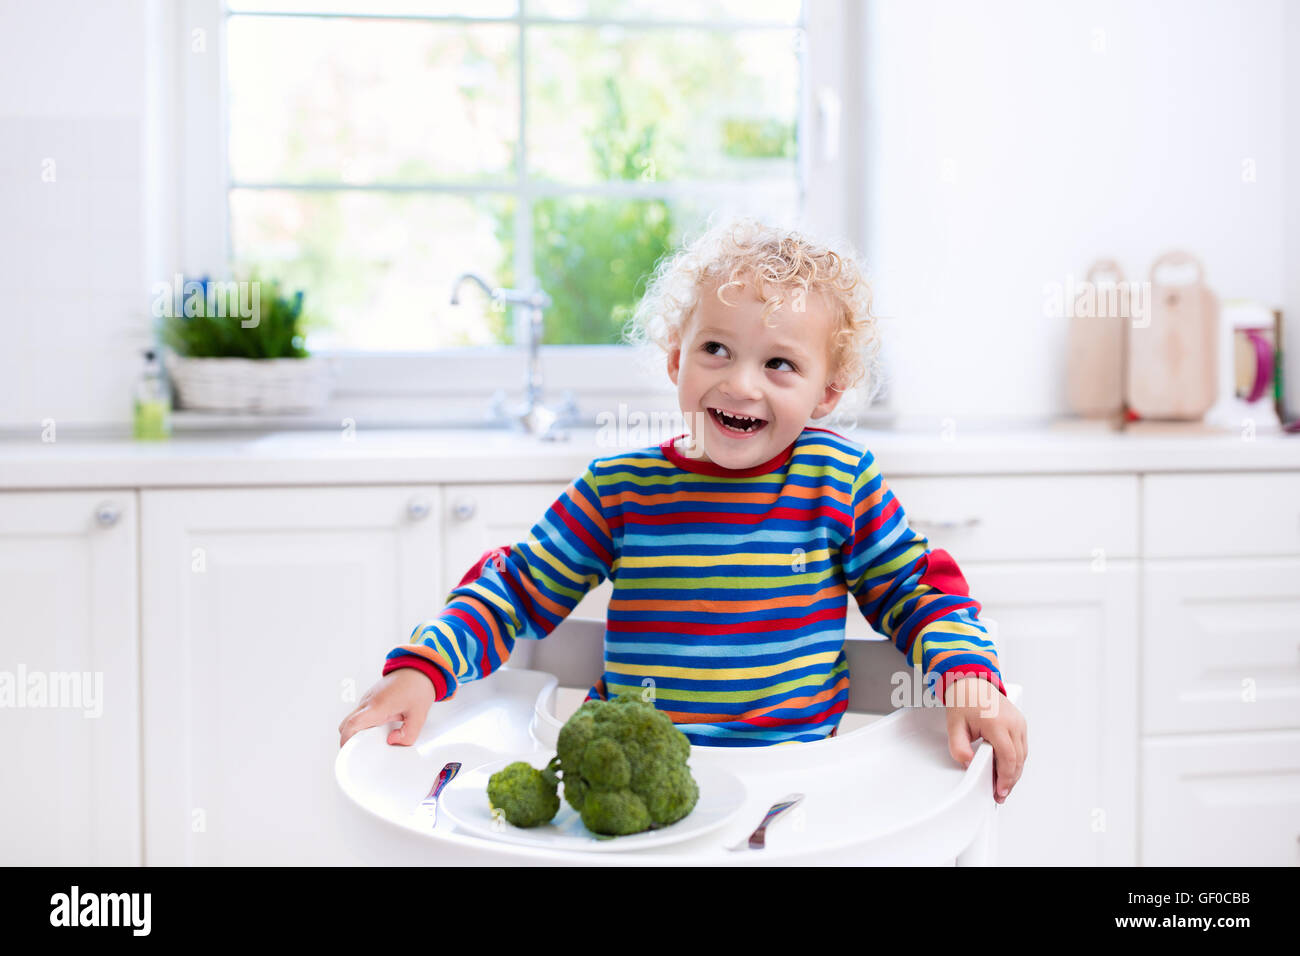 Happy baby sitting in high chair eating broccoli in a white kitchen. Healthy nutrition for kids.  sc 1 st  Alamy & Happy baby sitting in high chair eating broccoli in a white kitchen ...